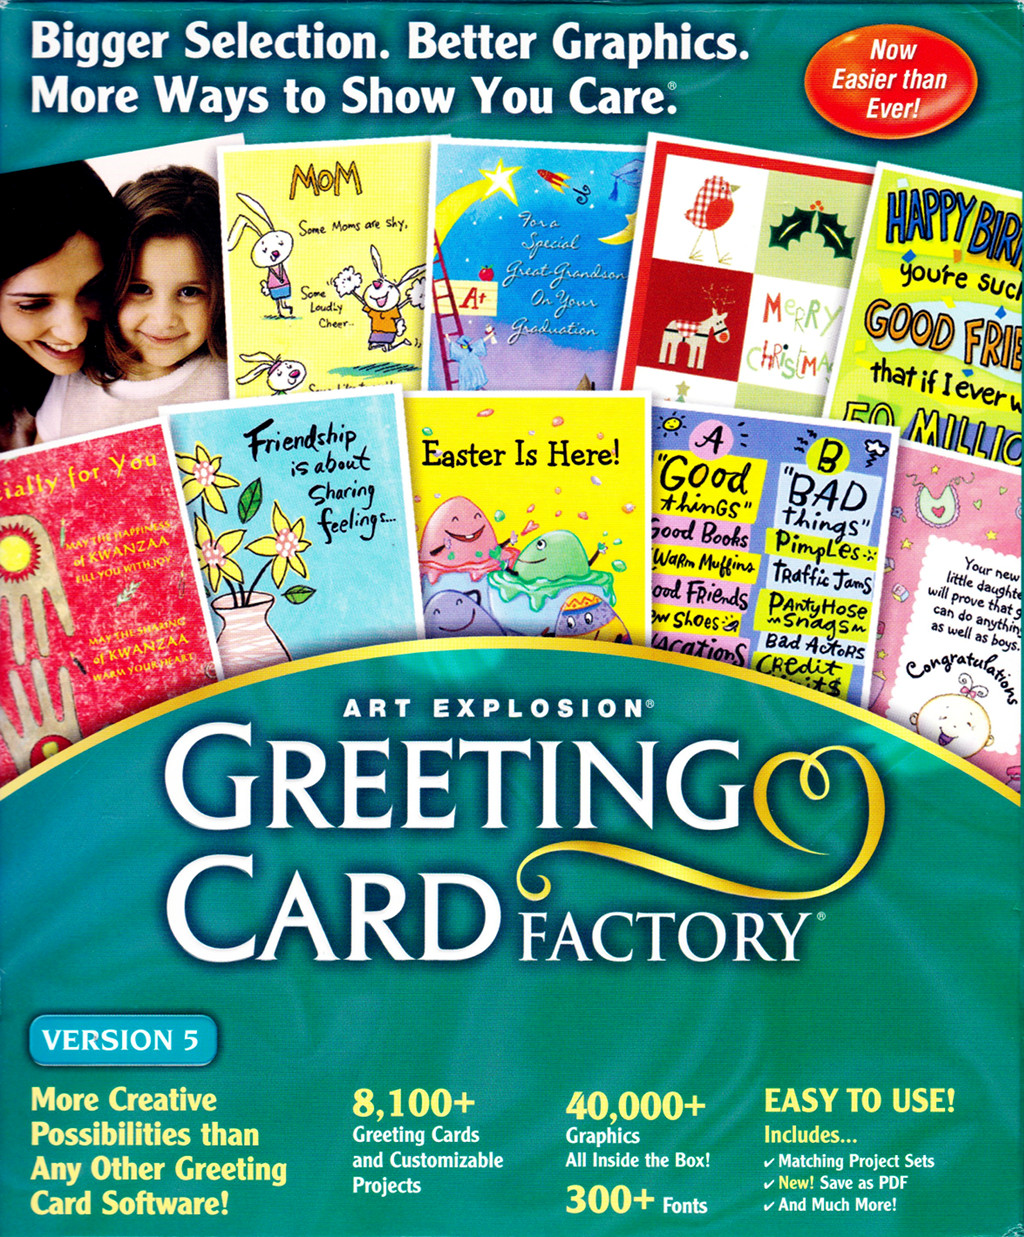 Art Explosion: Greeting Card Factory